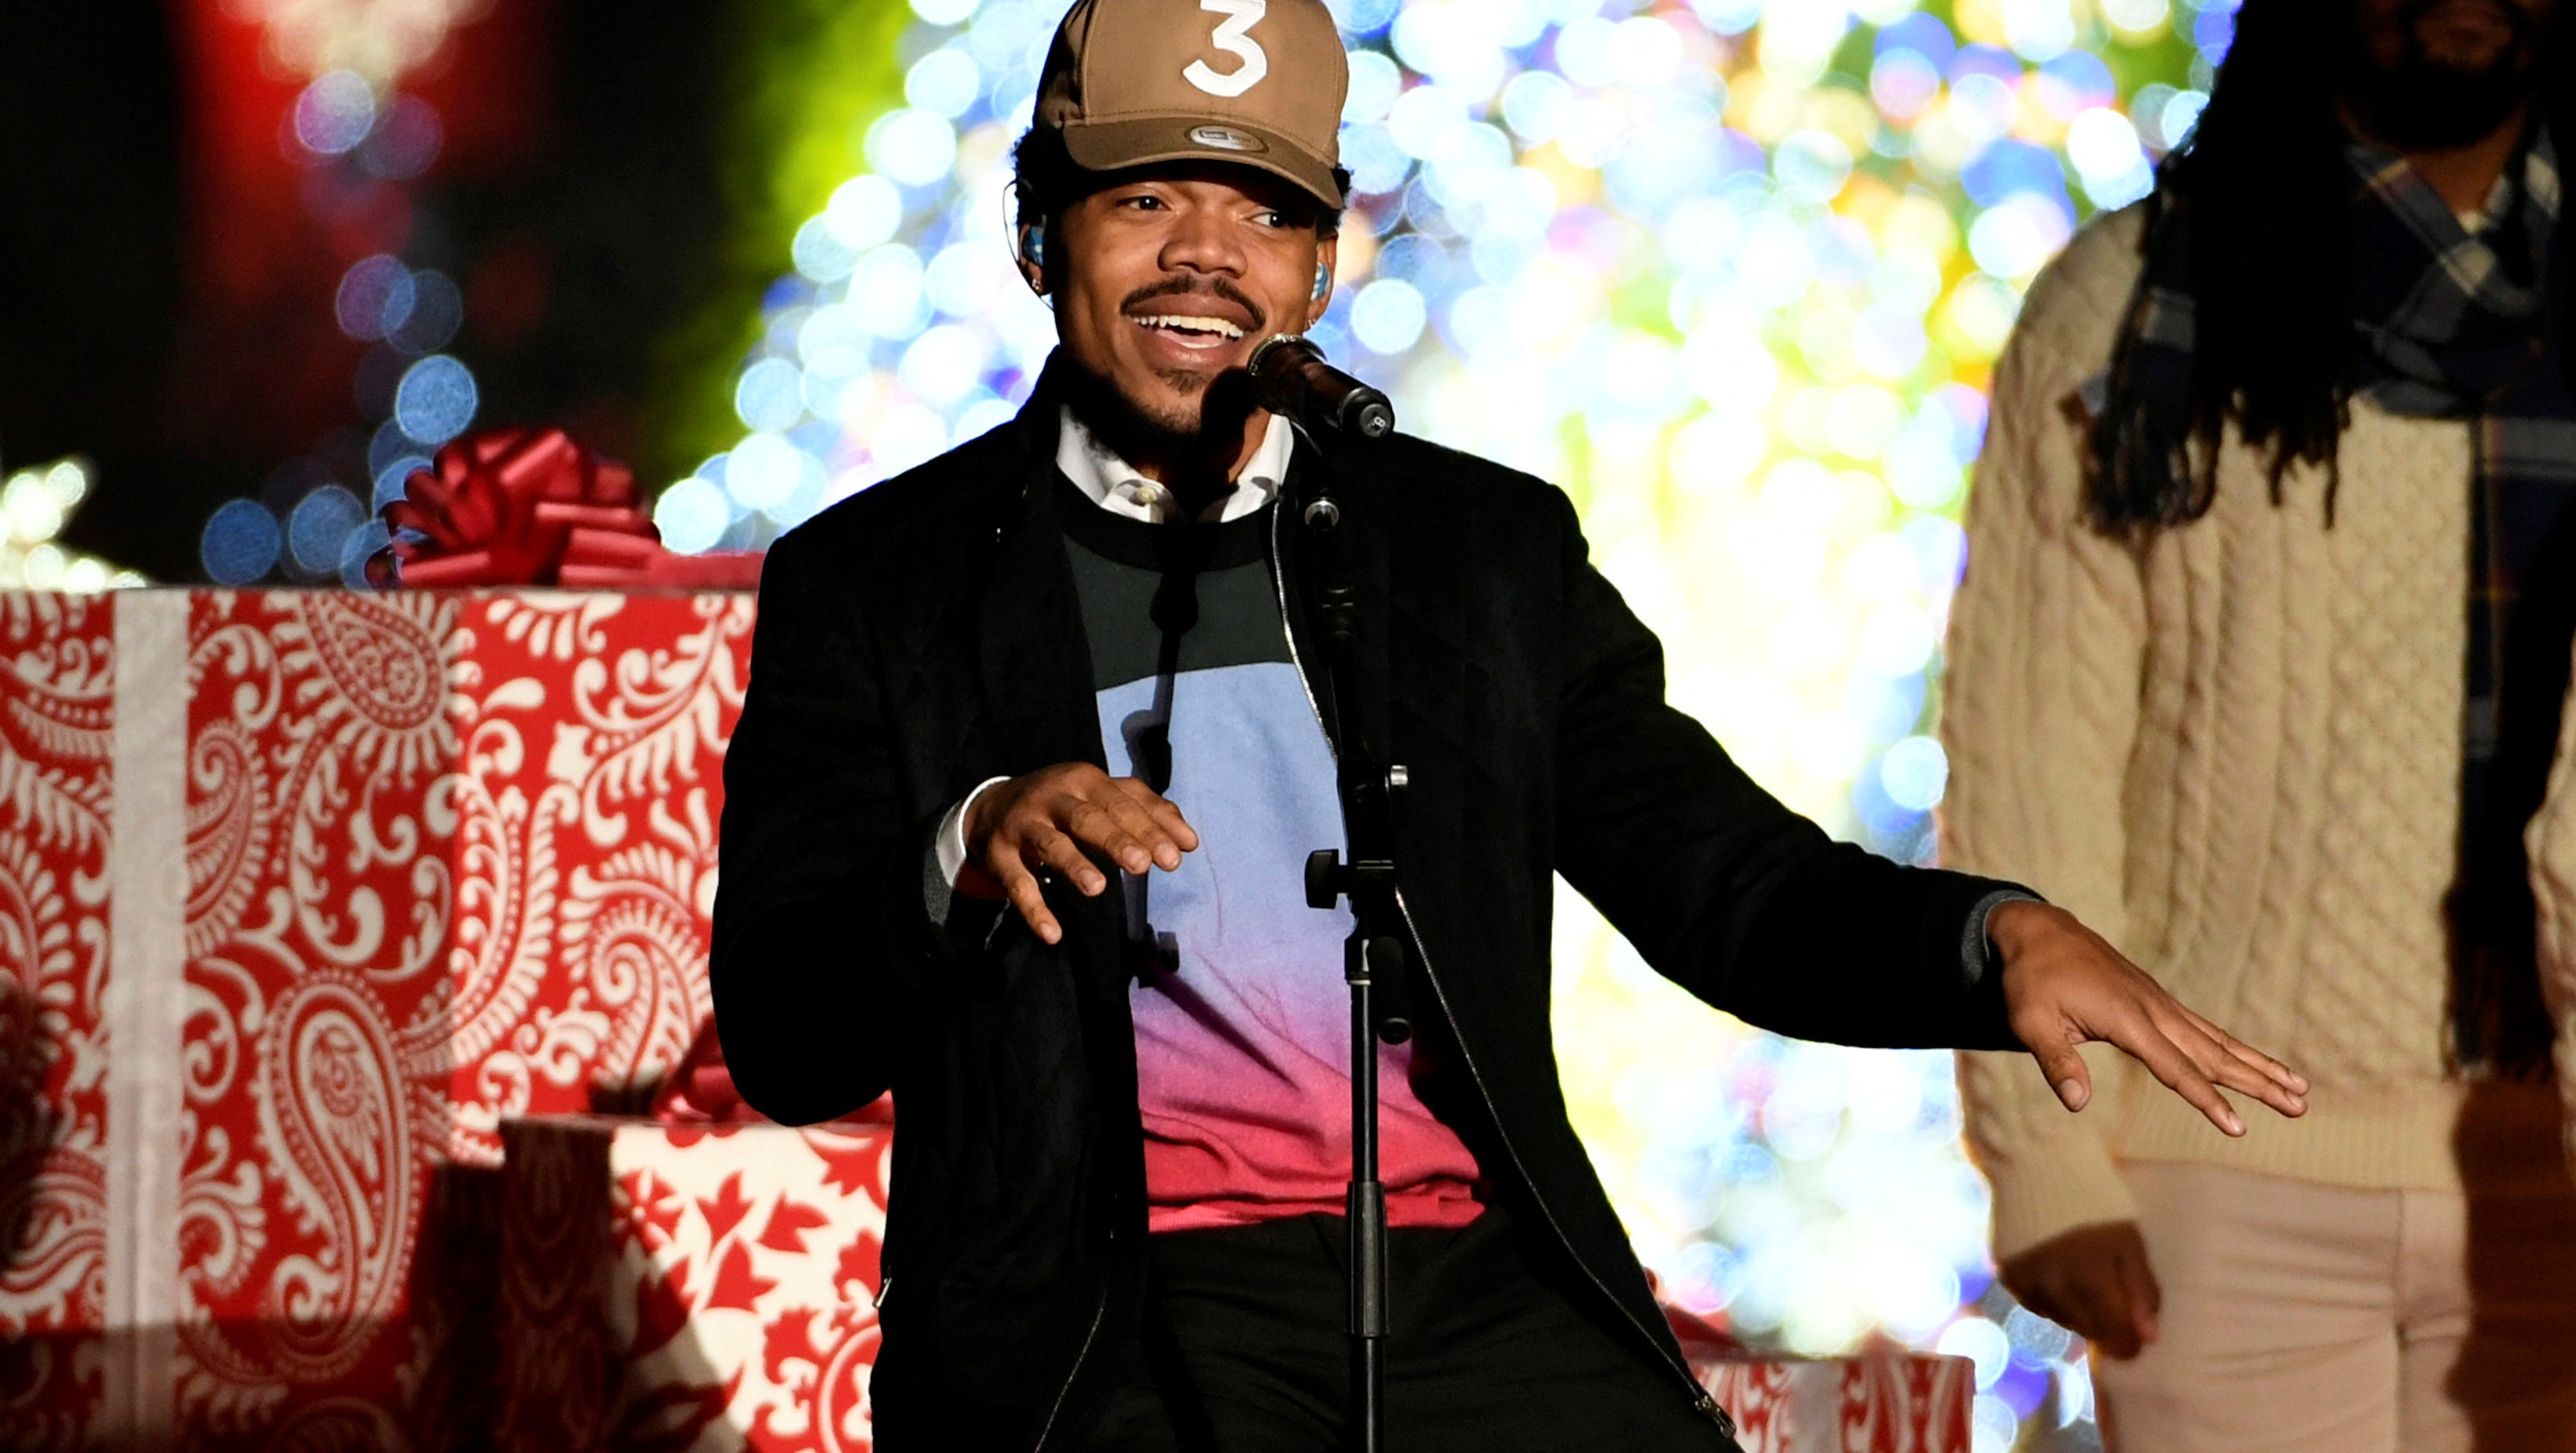 Chance the Rapper performs during the 94th Annual National Christmas Tree Lighting ceremony on The Ellipse, near the White House, in Washington, U.S., December 1, 2016.           REUTERS/Mike Theiler - RTSUA8Z